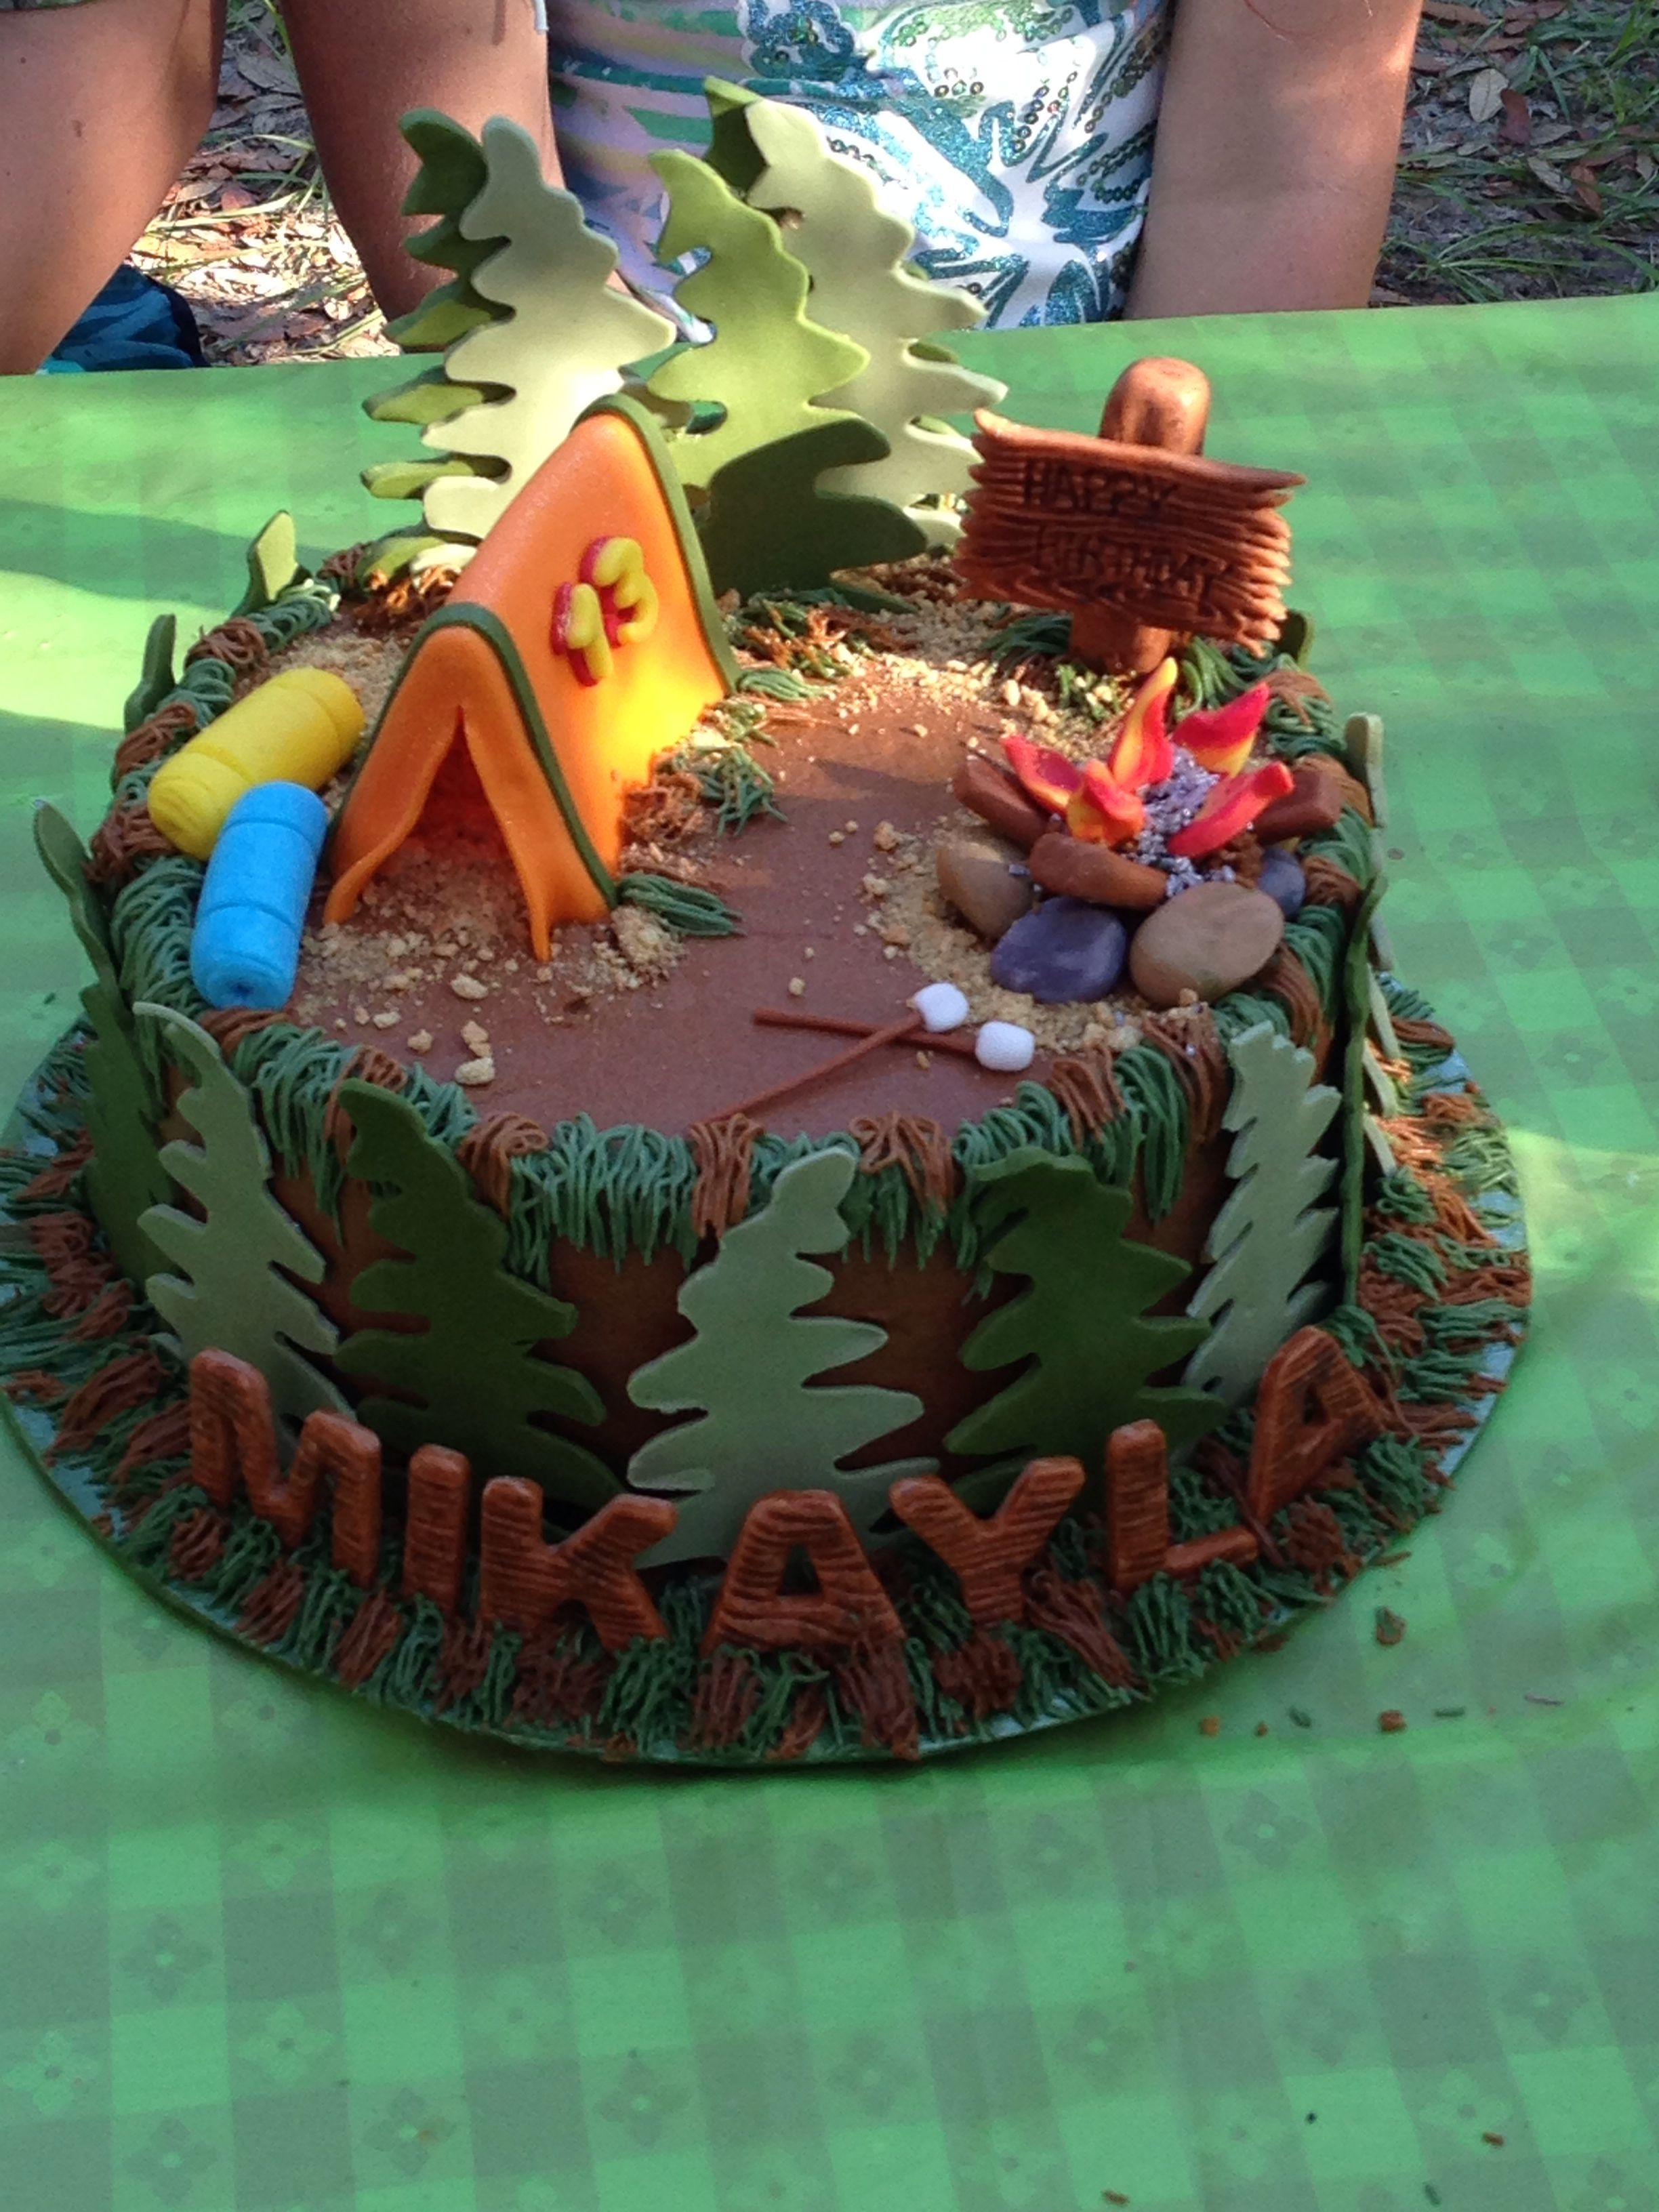 Wondrous Camping Cake Camping Birthday Cake Camping Cakes Funny Birthday Cards Online Bapapcheapnameinfo